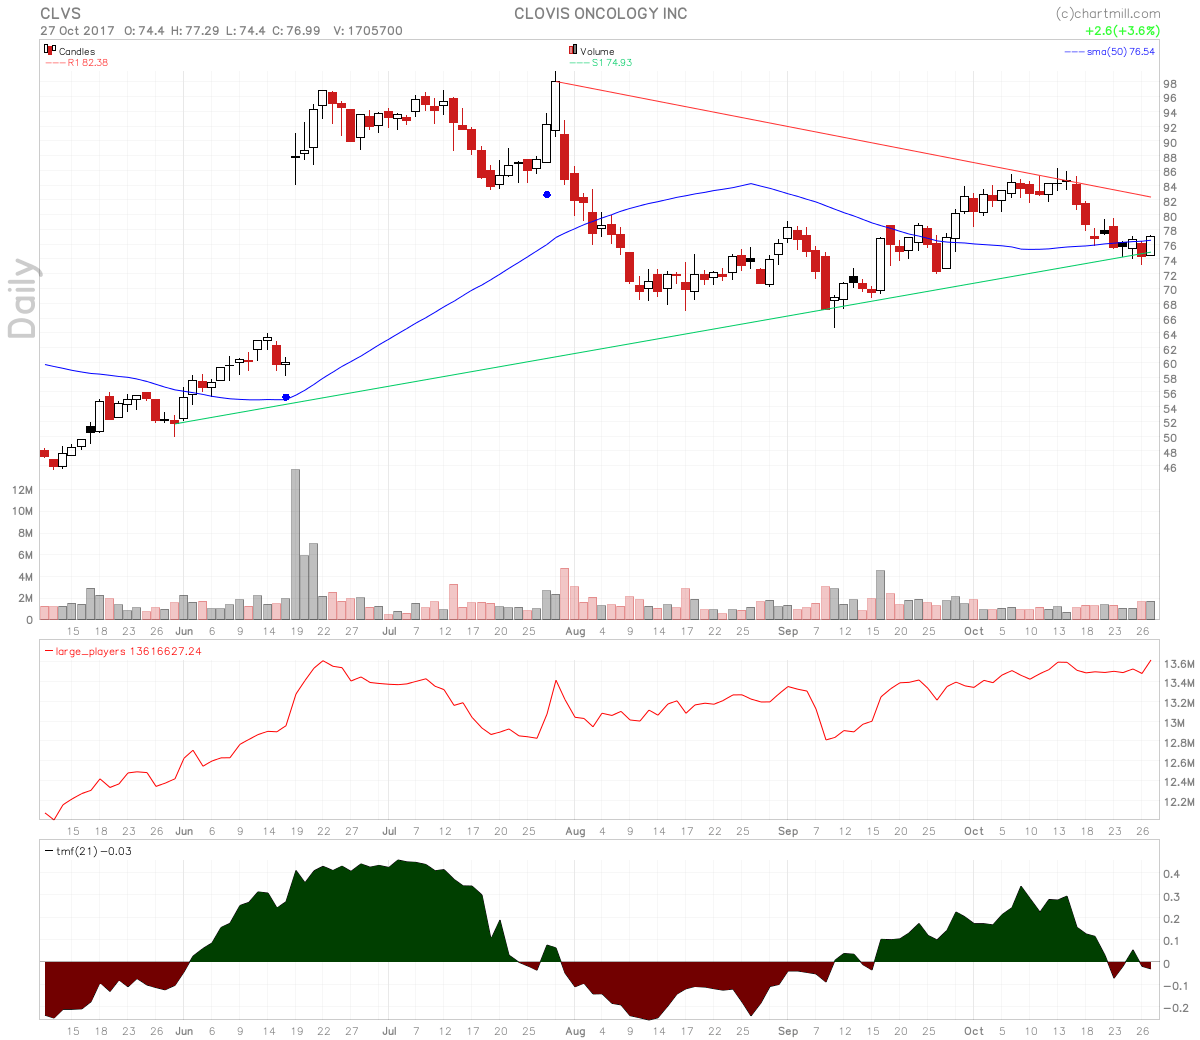 Clovis Oncology stock chart shows a Symmetrical Triangle pattern with rising large players volume.